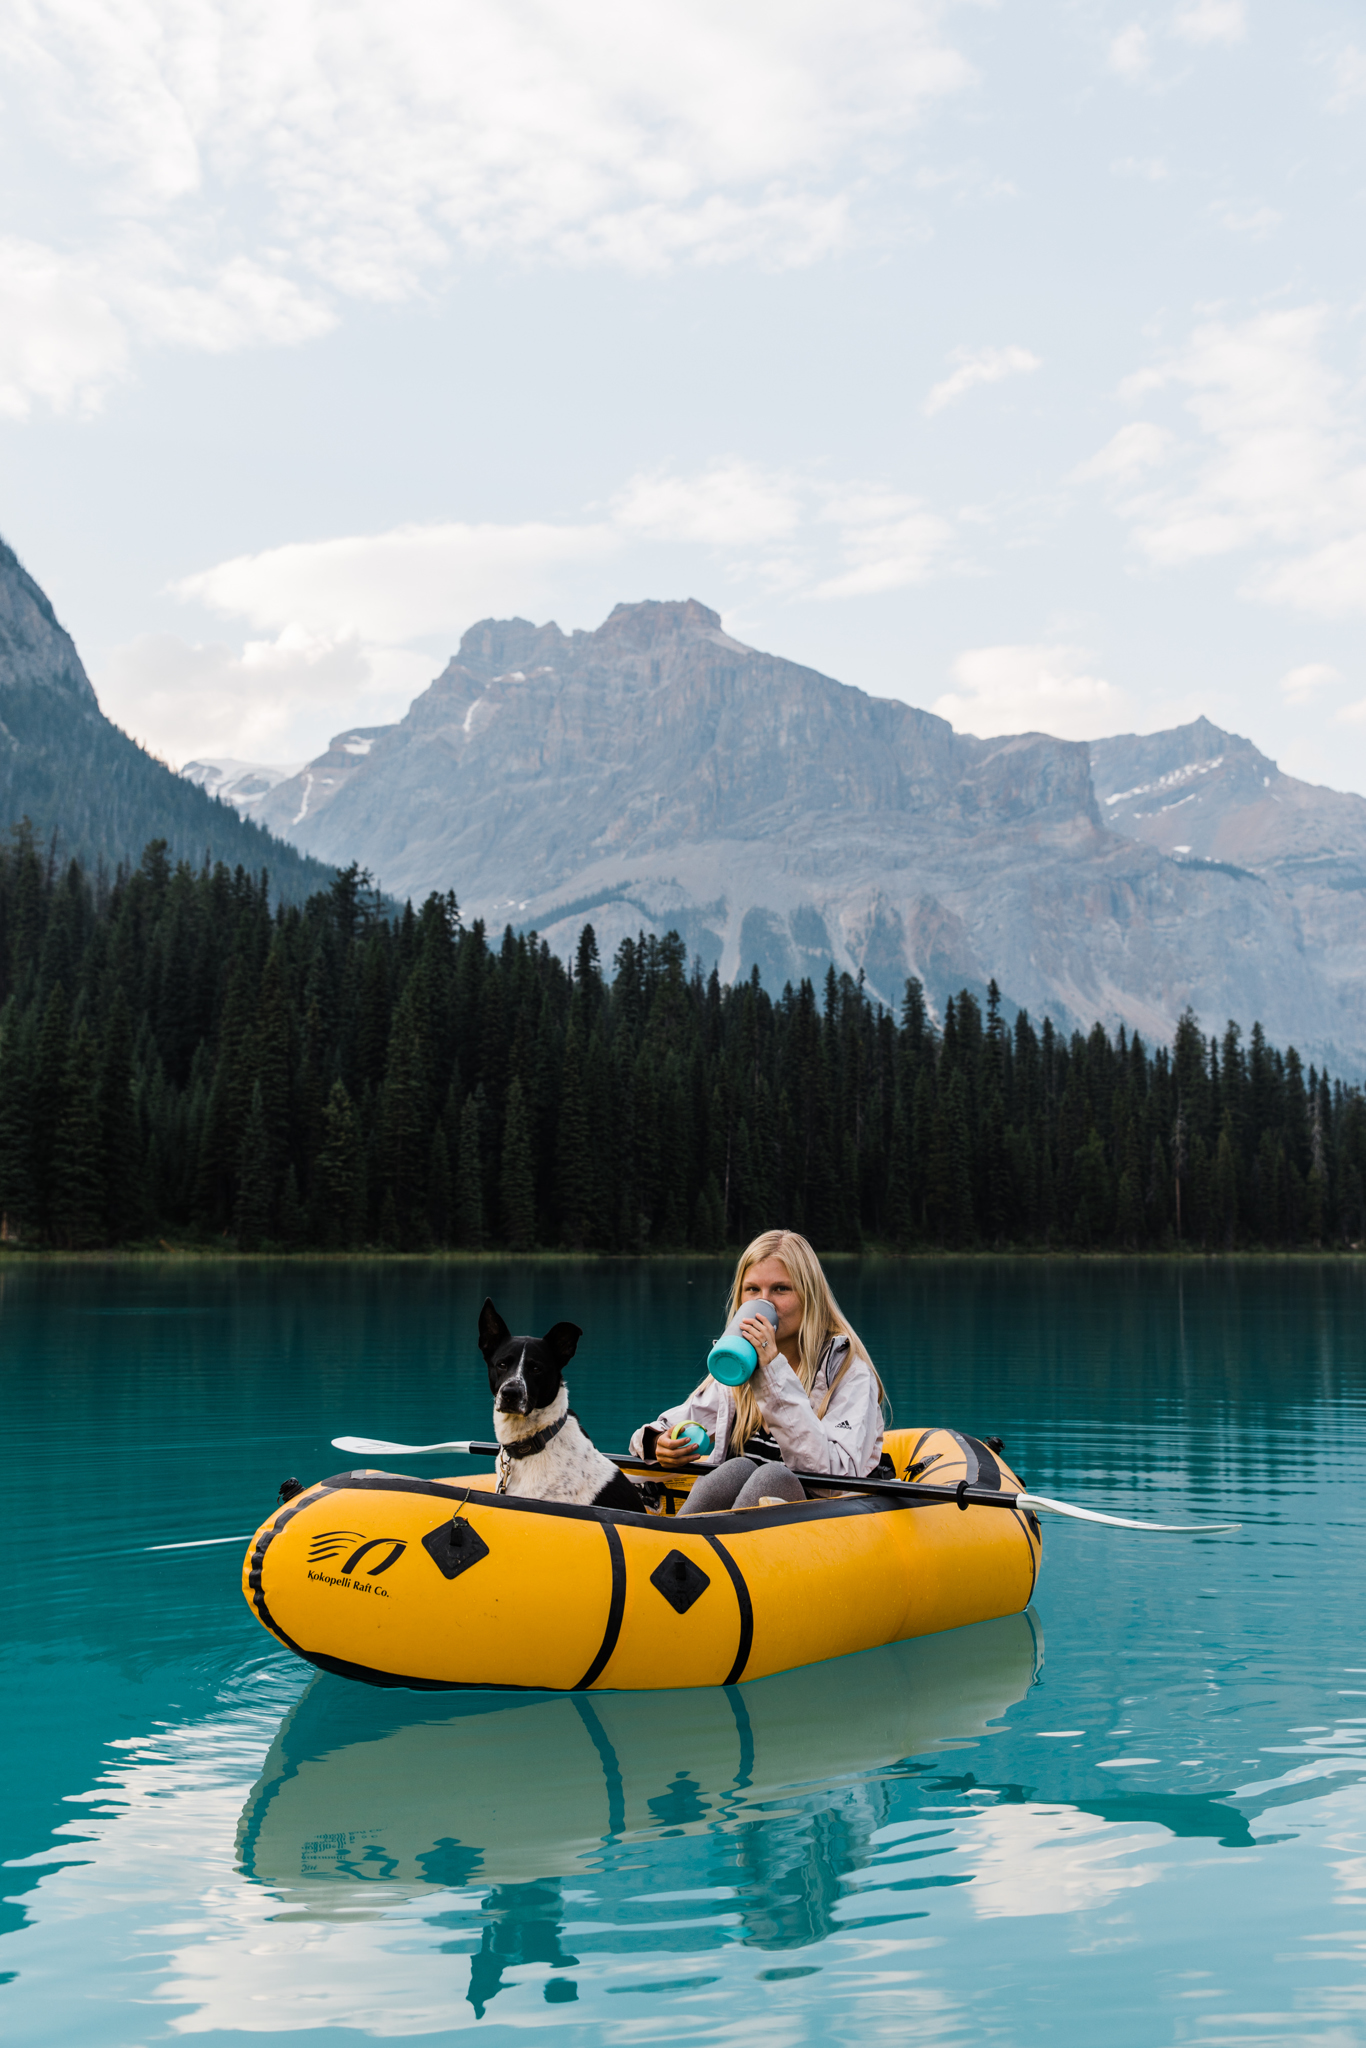 pack rafting in canada | utah and california adventure elopement photographers | the hearnes adventure photography | www.thehearnes.com